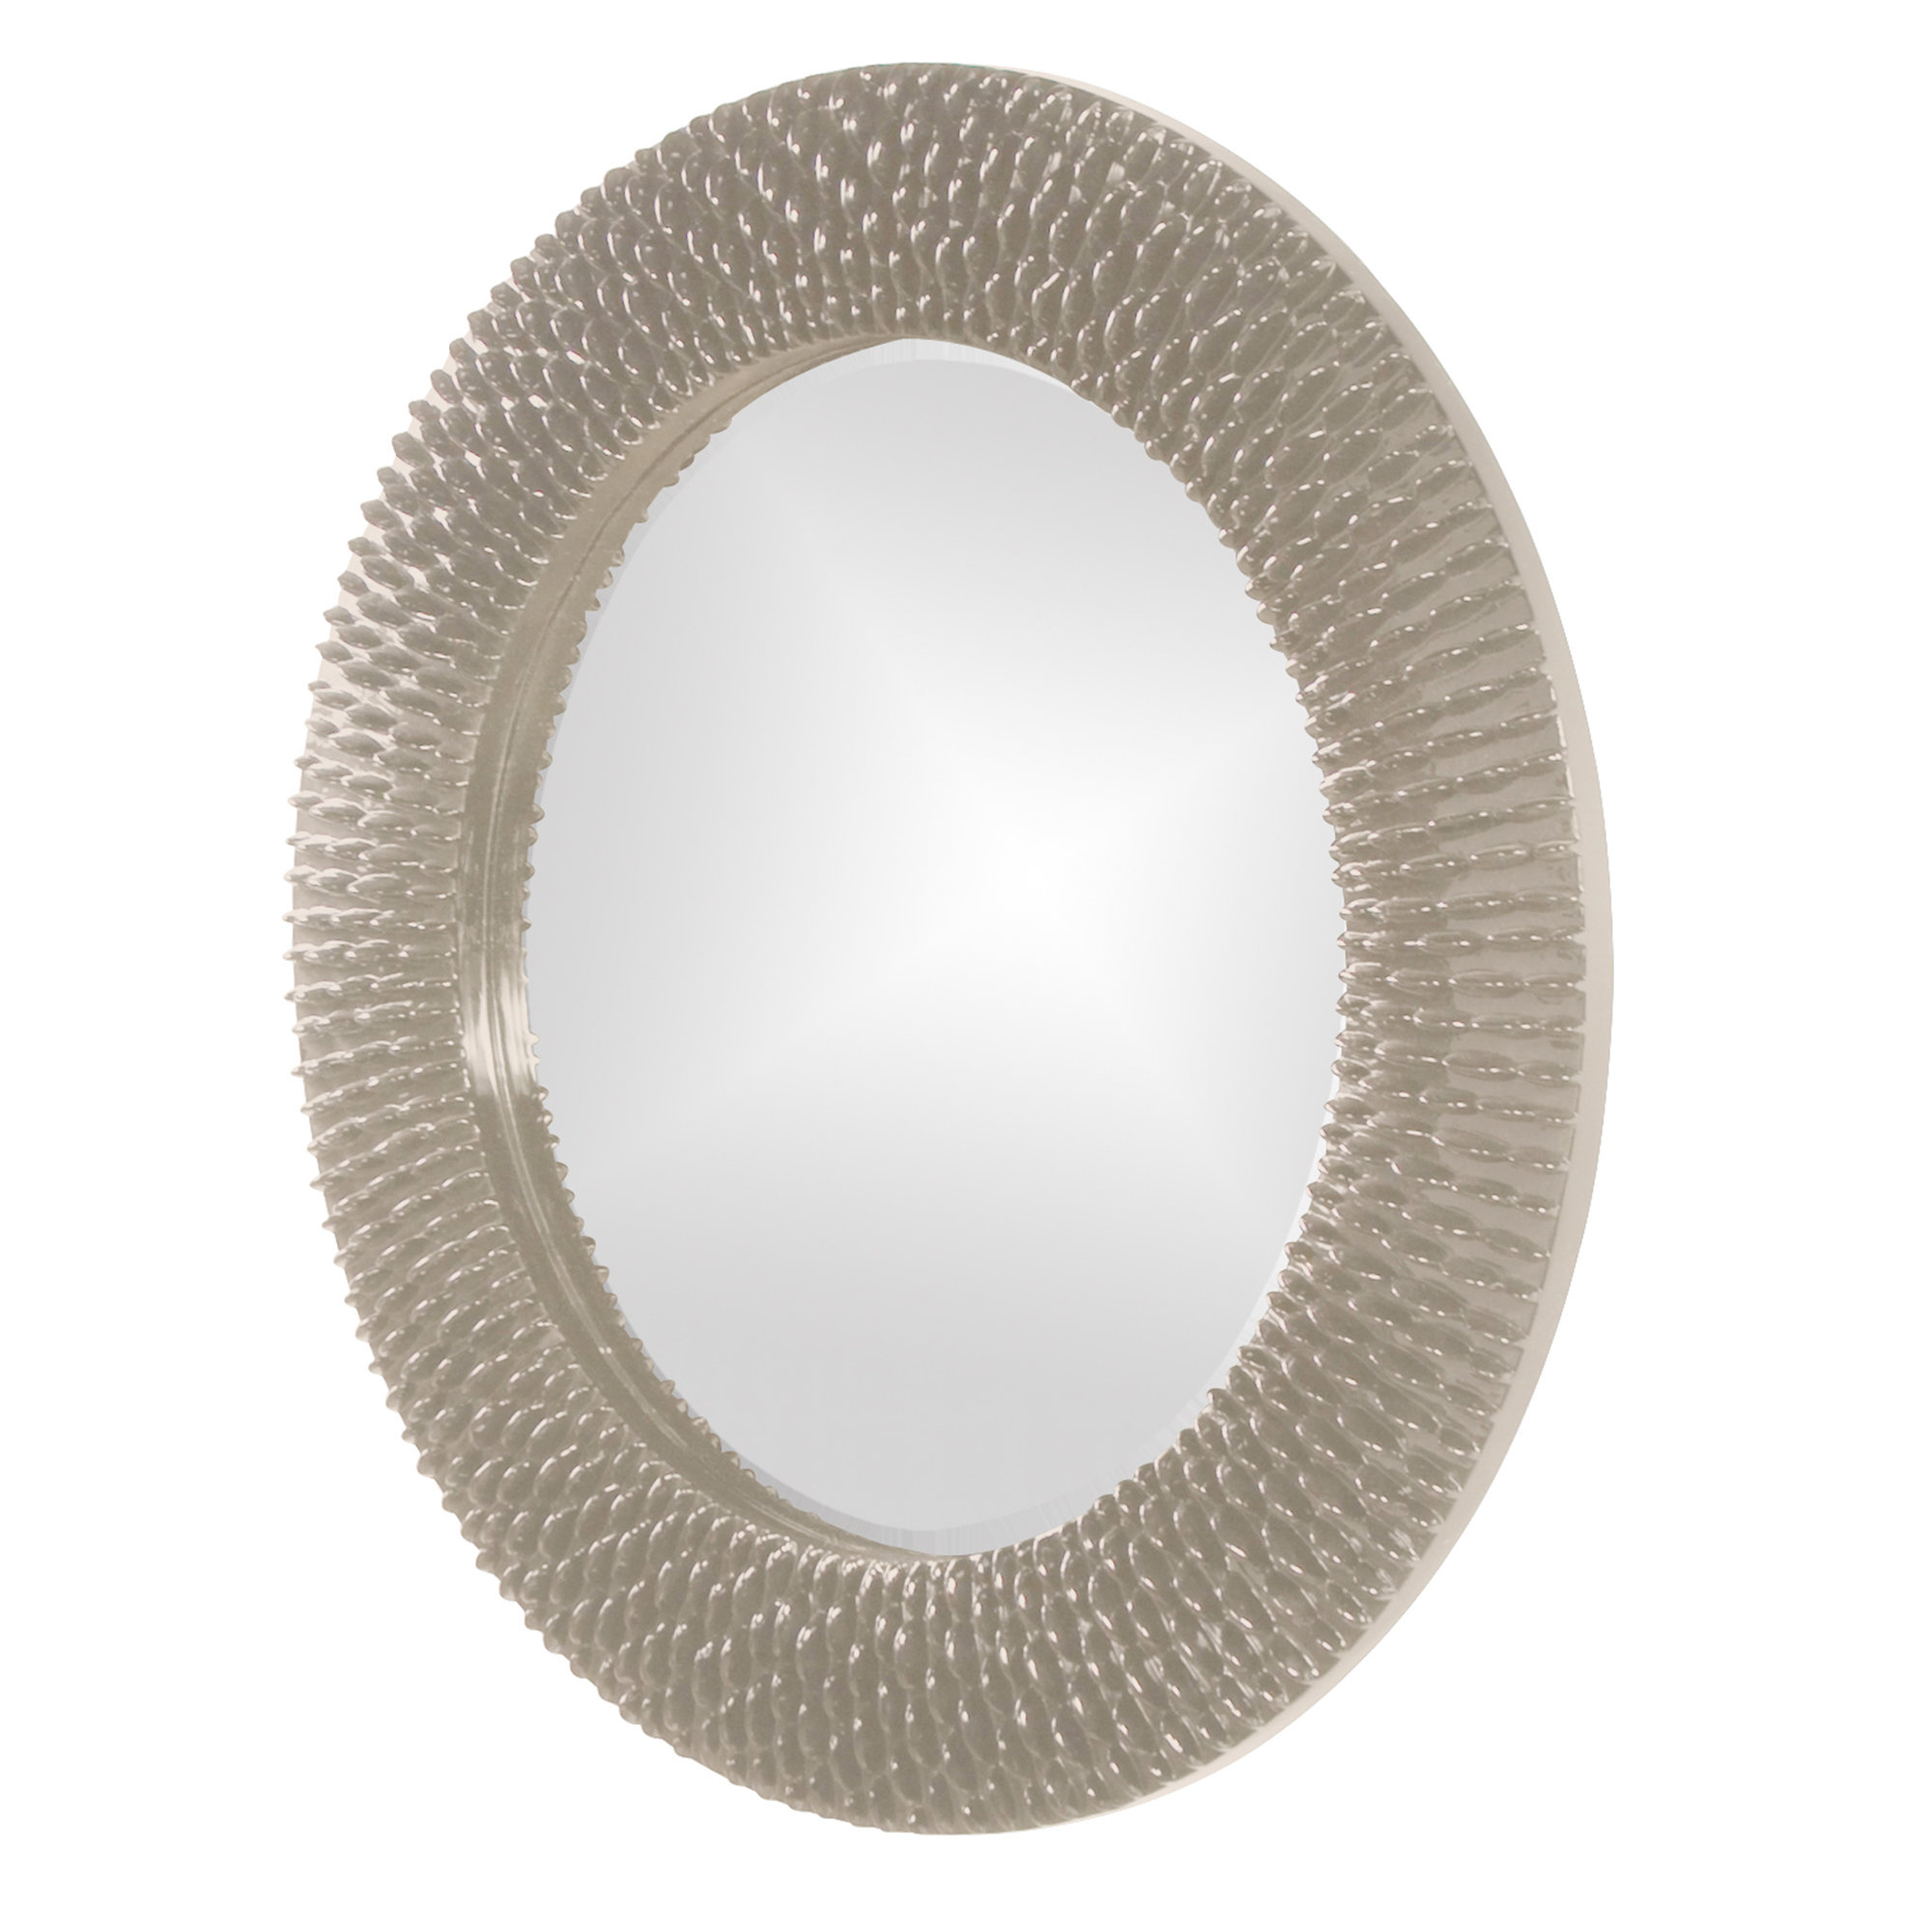 Hengelo Wall Mirror With Regard To Popular Point Reyes Molten Round Wall Mirrors (View 8 of 20)